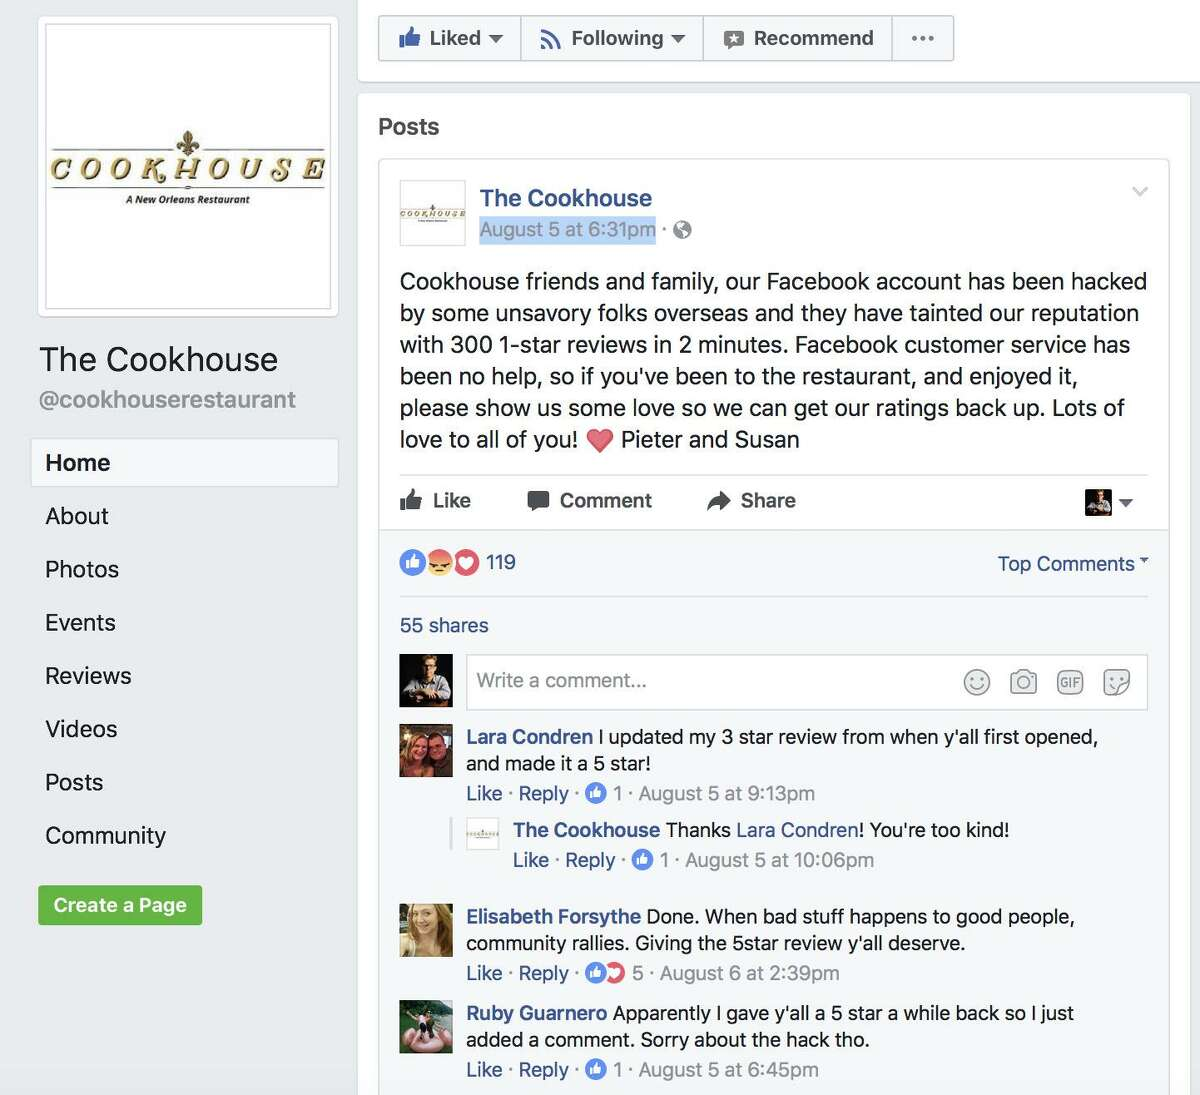 The Cookhouse asked supporters to counter the negative marks with reviews of their own.